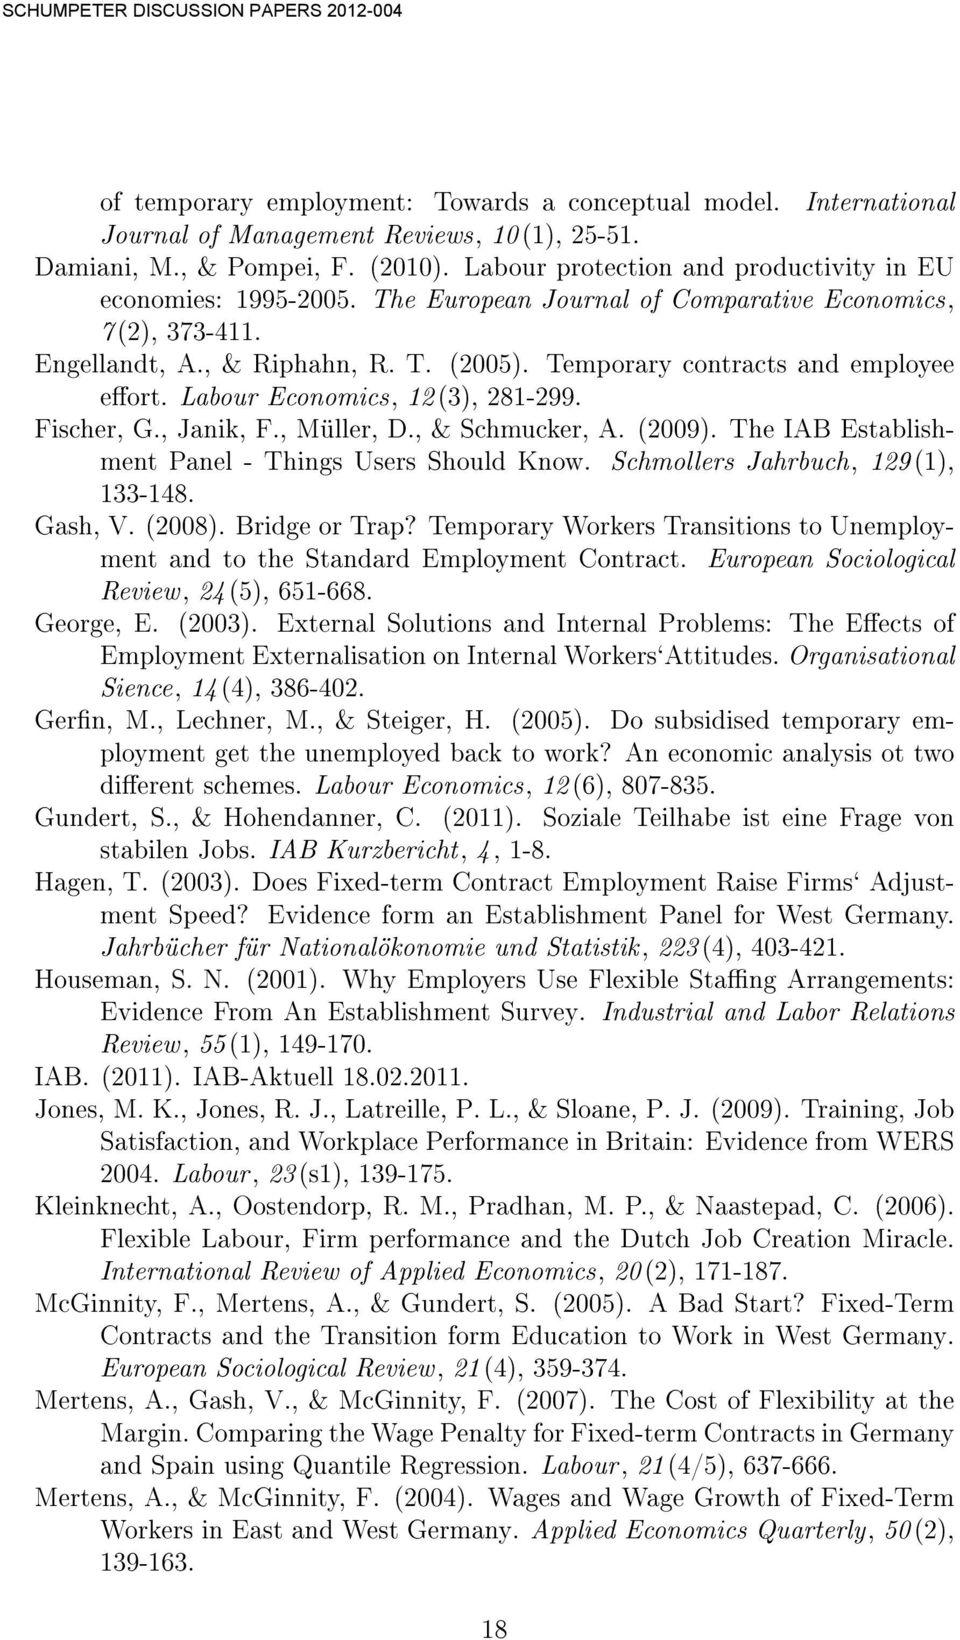 Temporary contracts and employee eort. Labour Economics, 12(3), 281-299. Fischer, G., Janik, F., Müller, D., & Schmucker, A. (2009). The IAB Establishment Panel - Things Users Should Know.